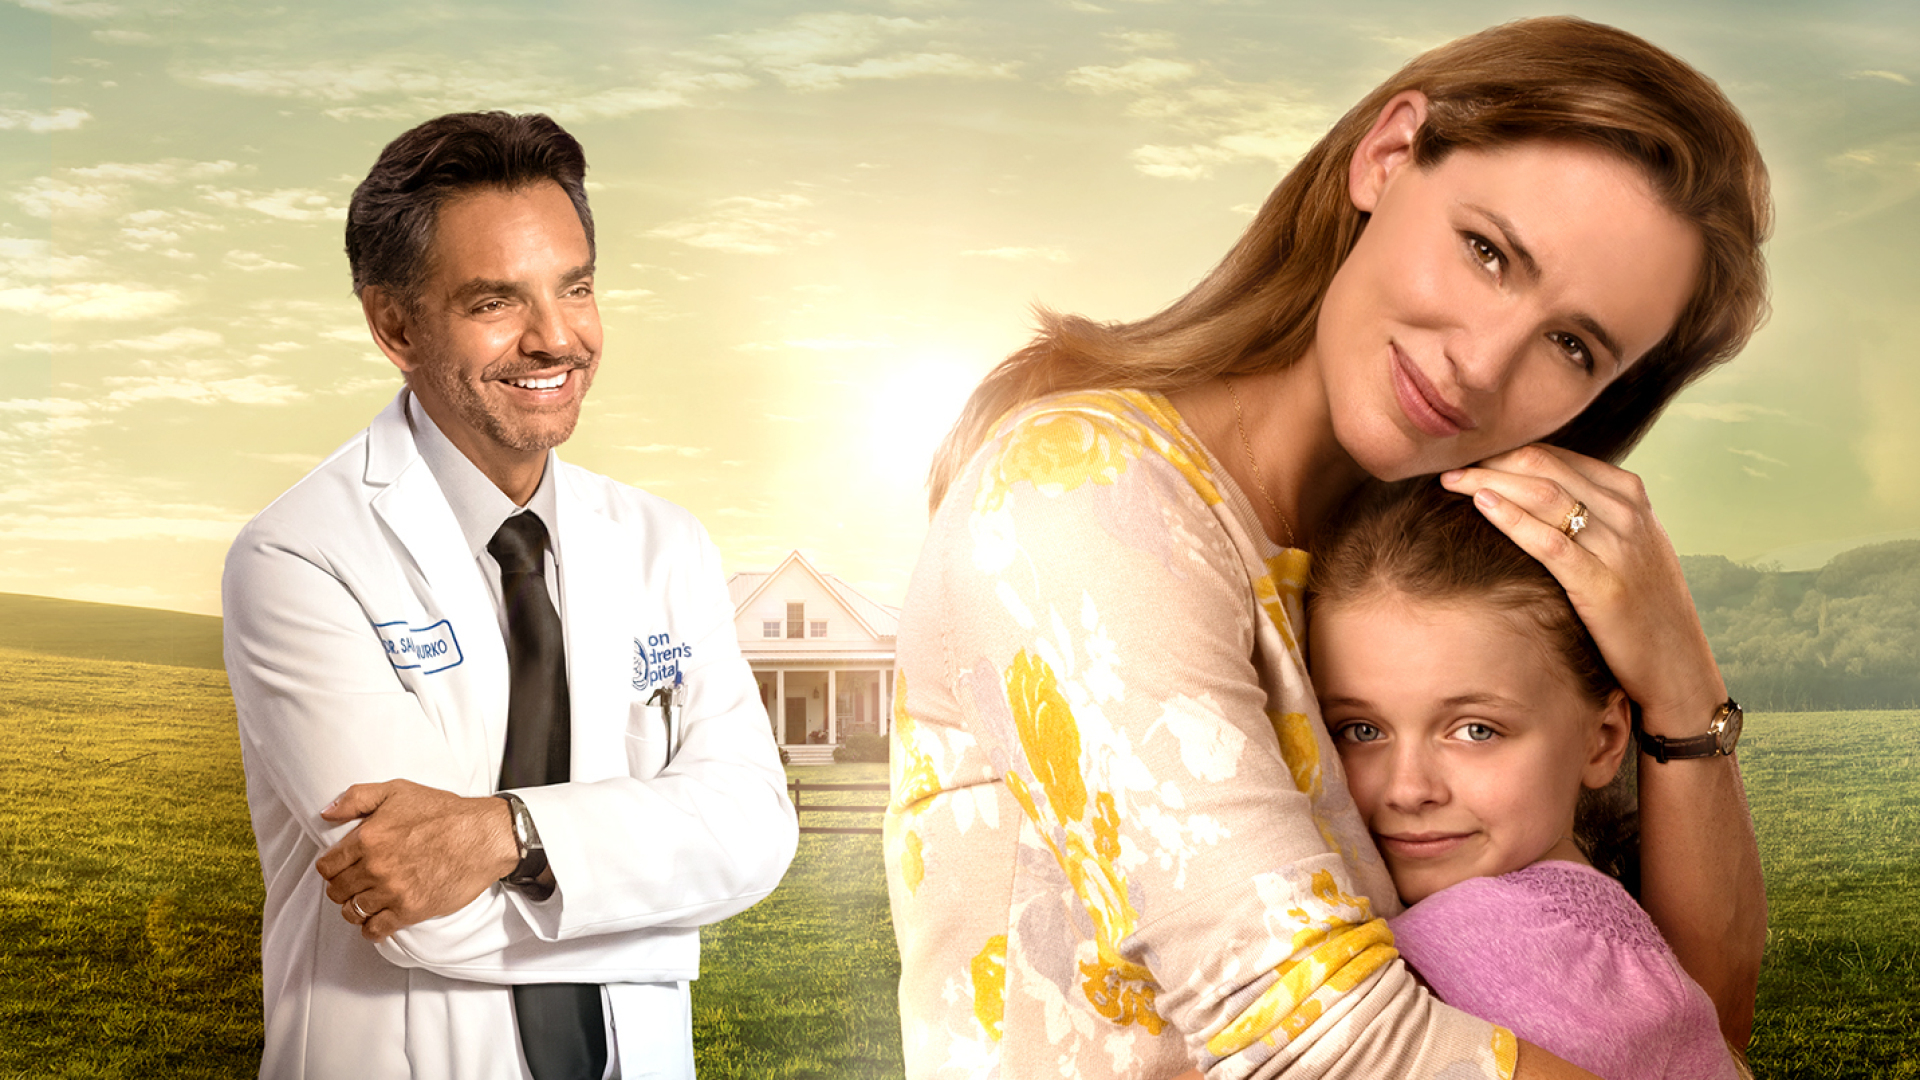 miracles from heaven full movie online free